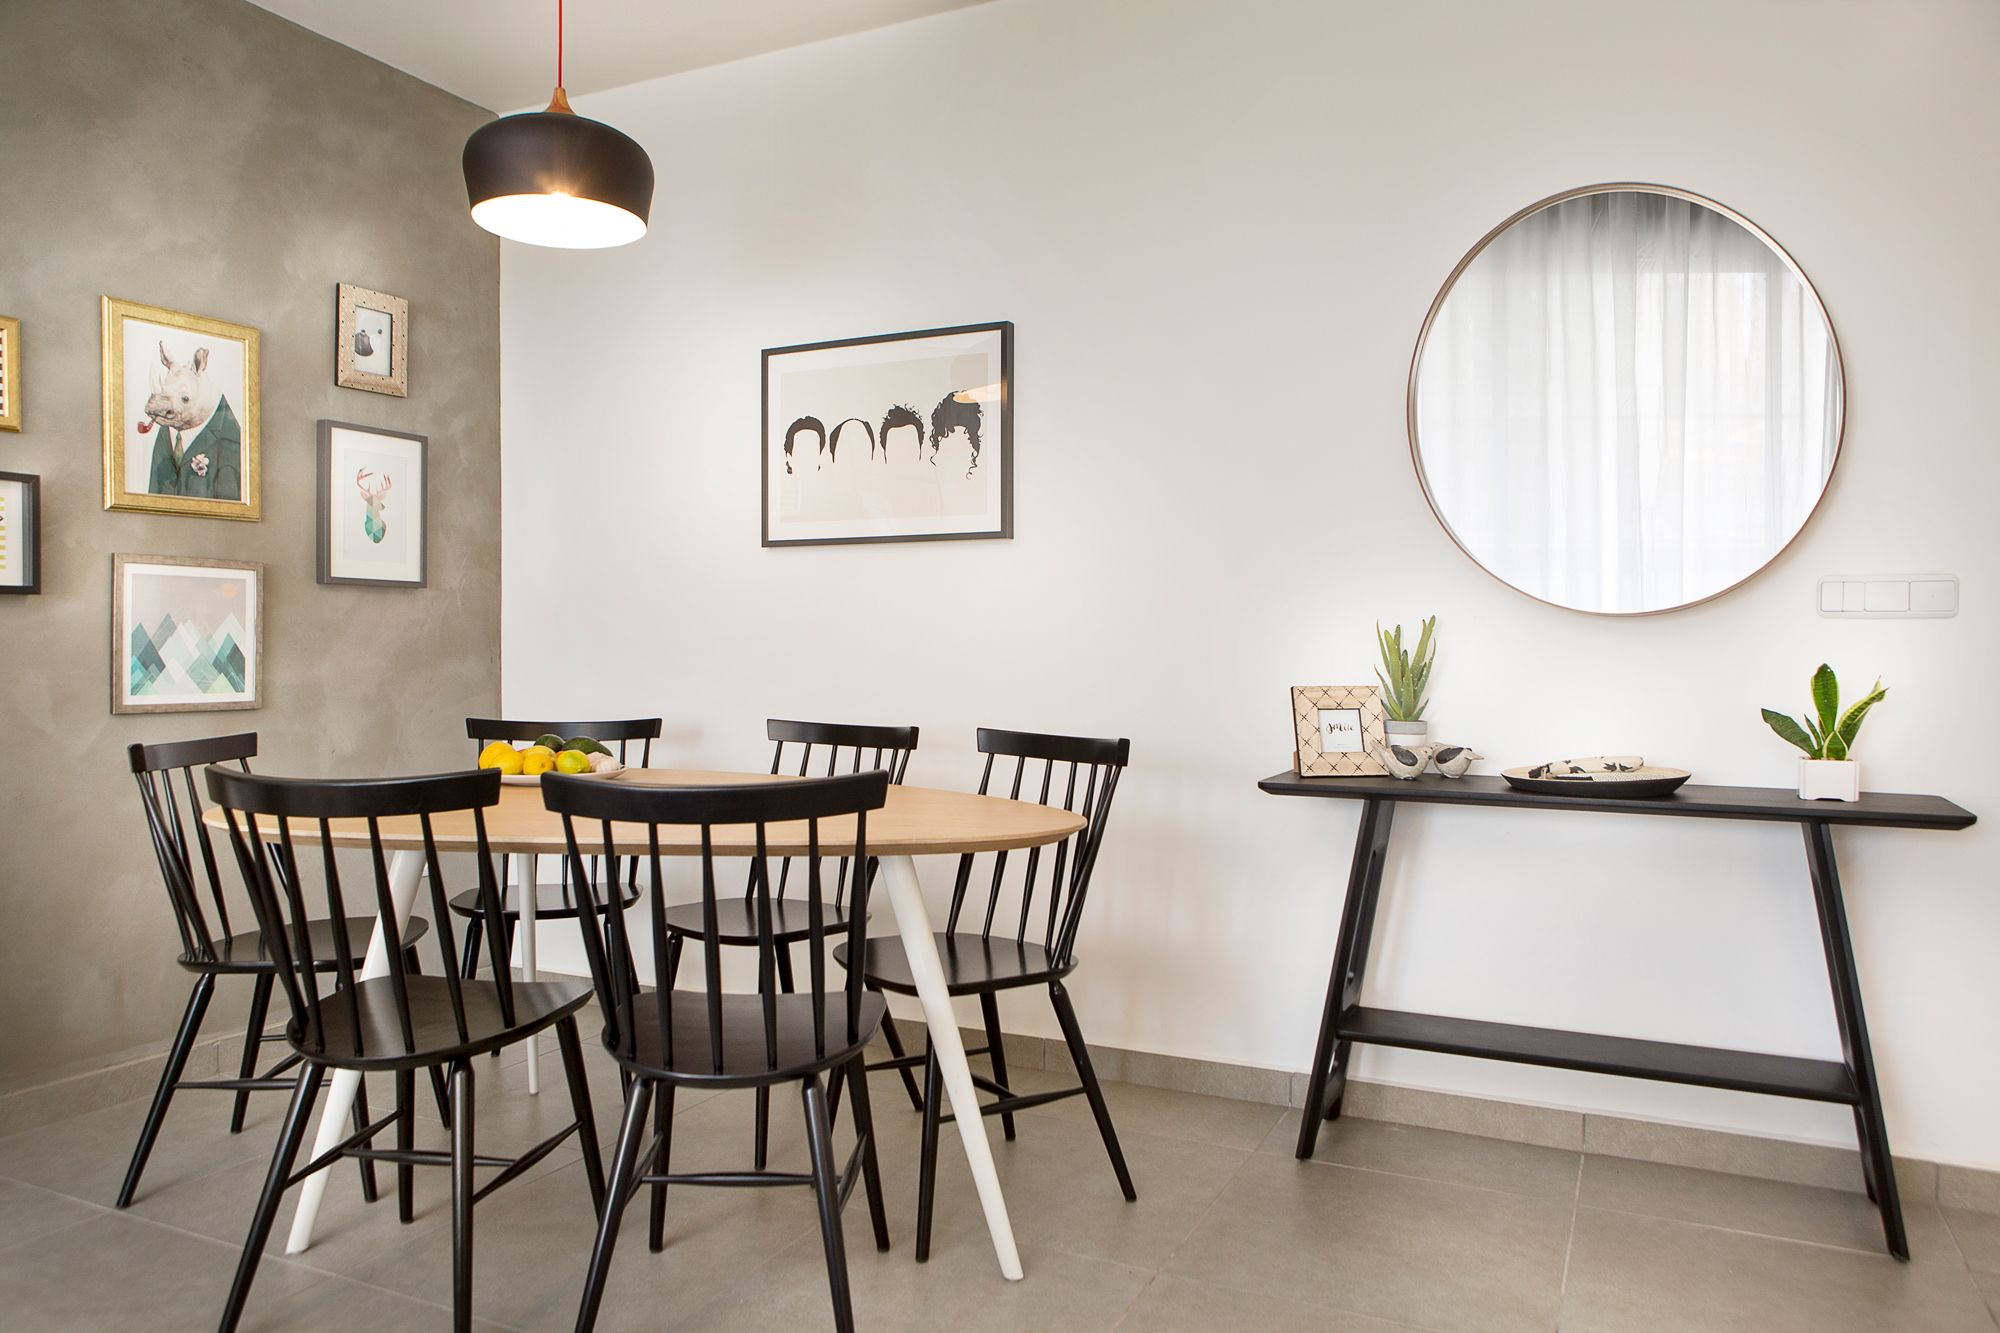 Black Chairs Seinfeld Console Round Mirror Dinning Room Entrance Contemporary Apartment Home Decor Apartment Design